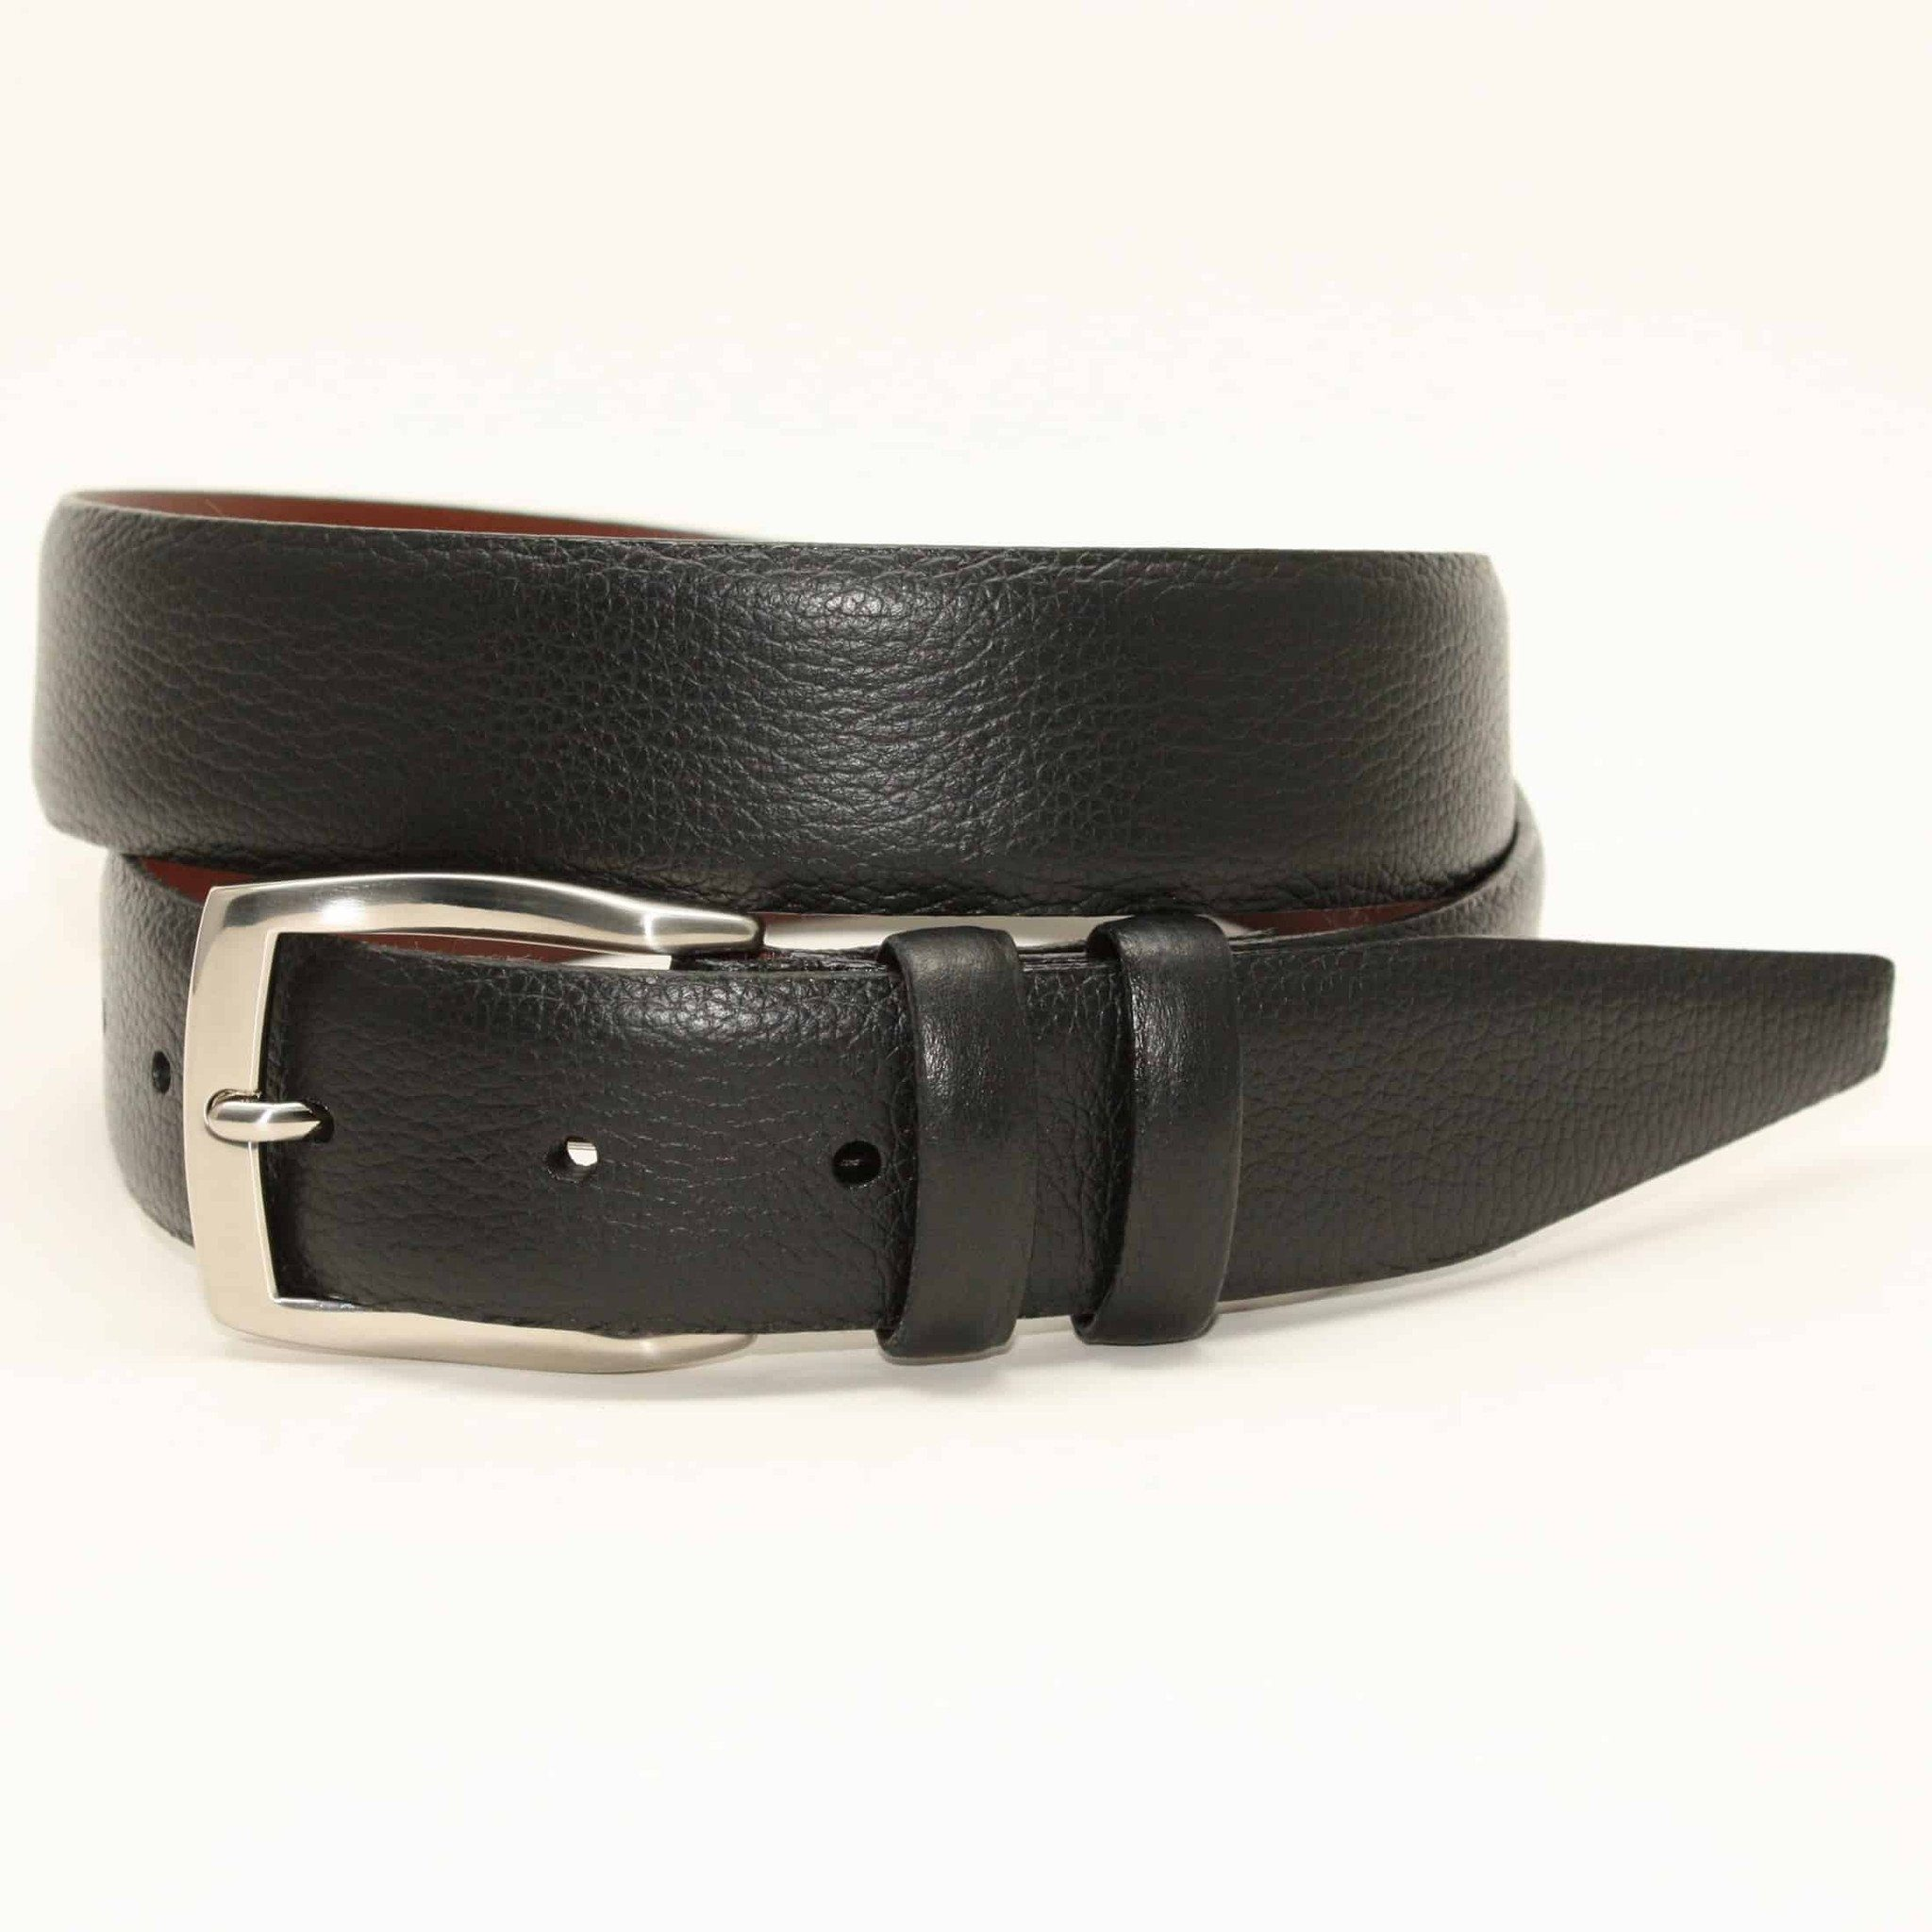 Pebble Grained Calfskin Belt - Black,BELT,GentRow.com, | GentRow.com